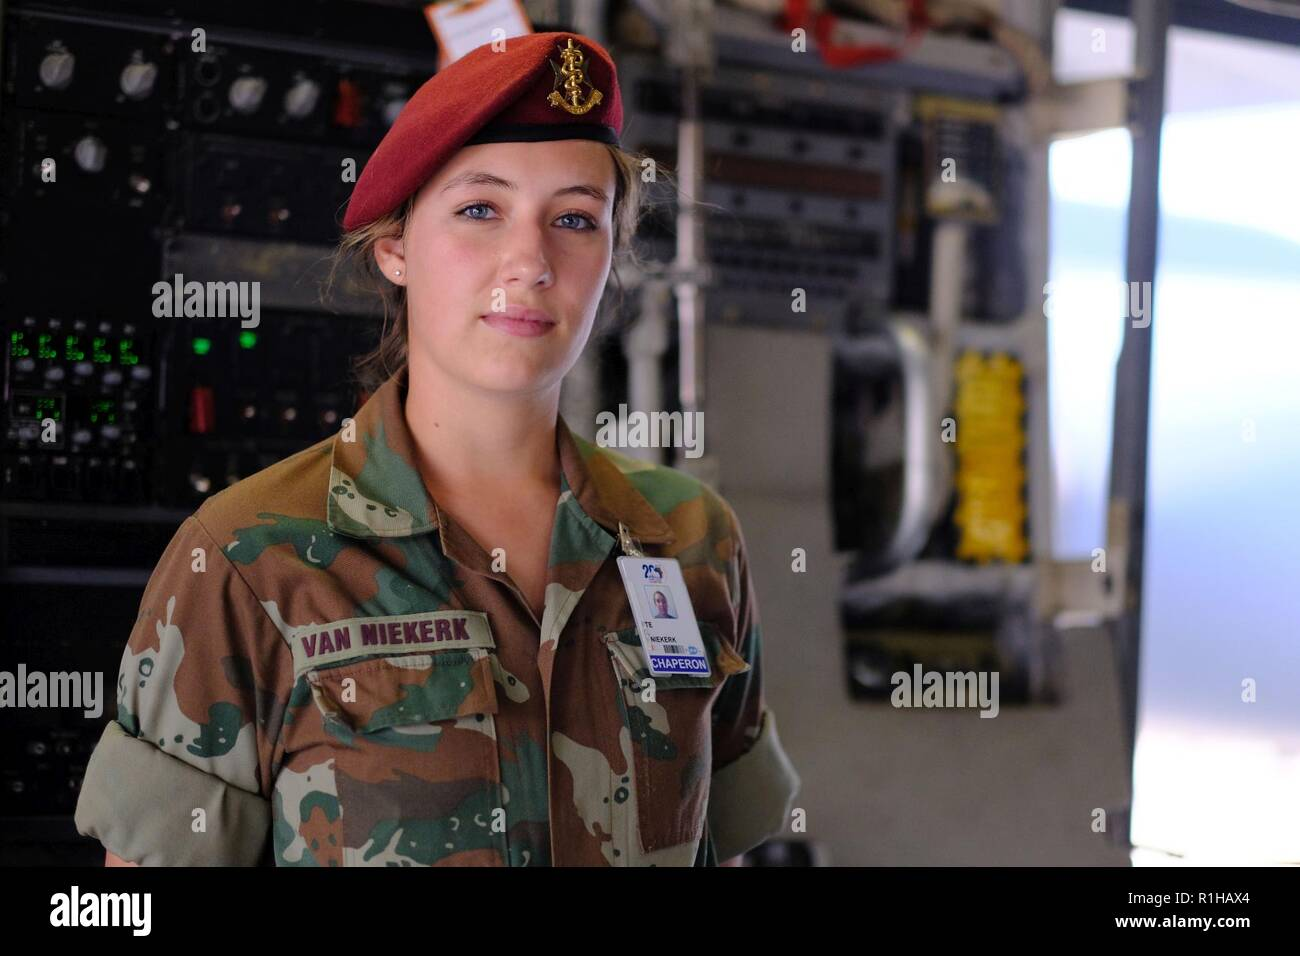 f67db33959f A member of the South African Army visits the inside of a C-17 Globemaster